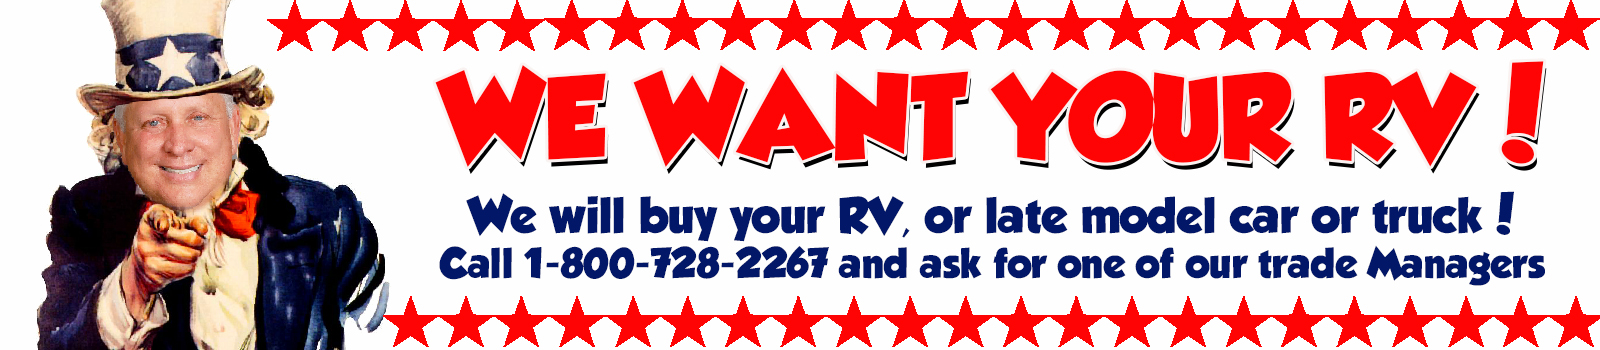 We Want Your RV